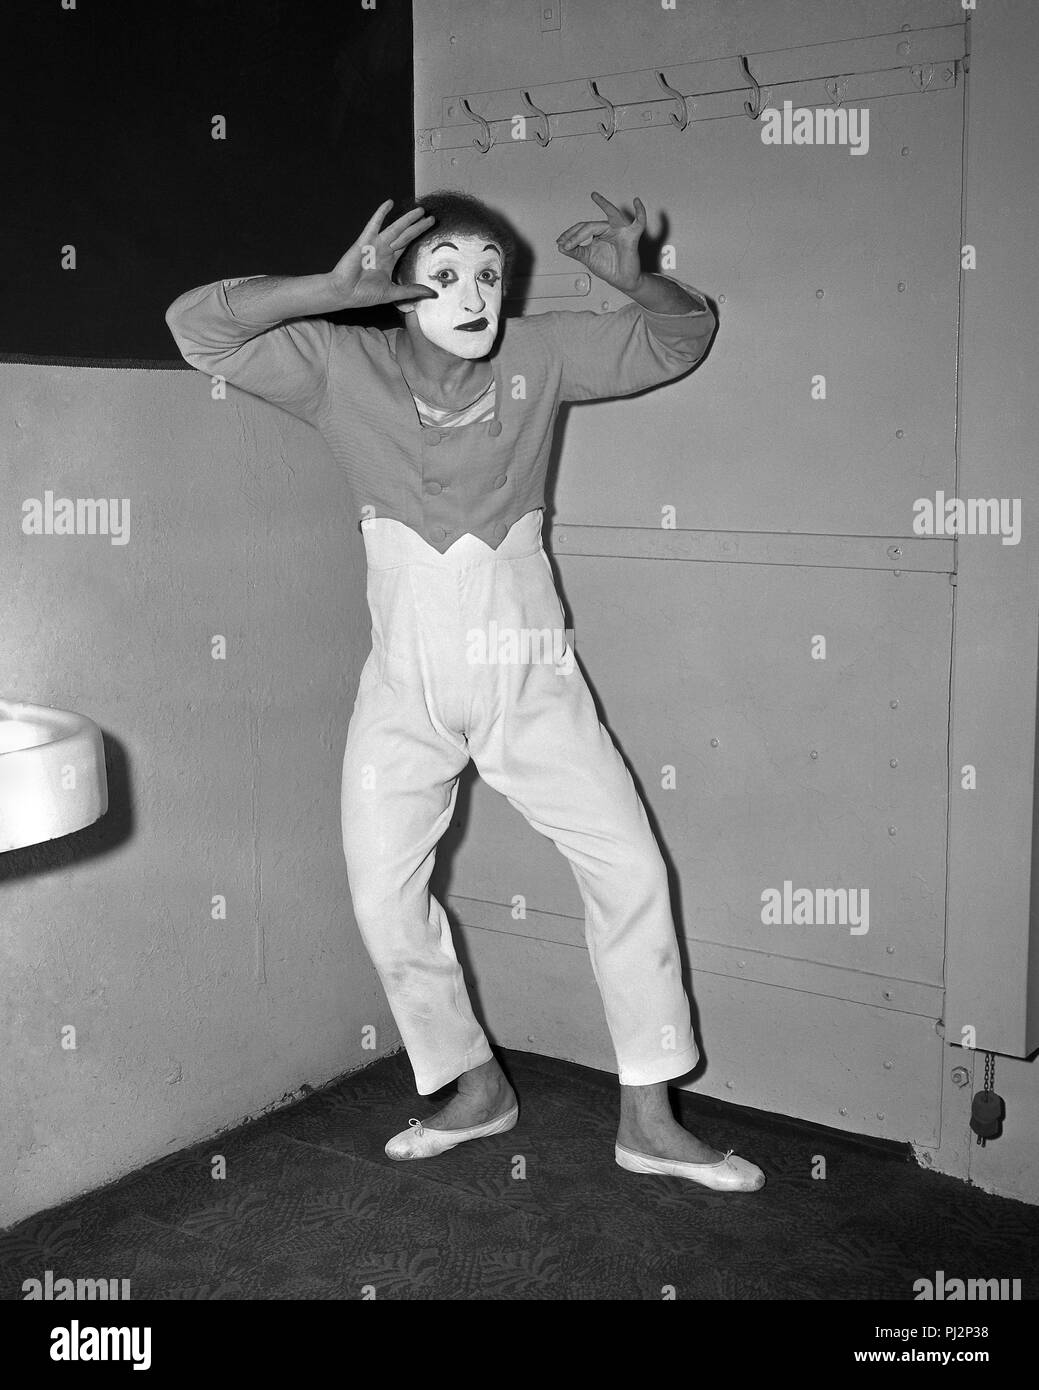 French actor and mime artist, Marcel Marceau in performing in Chicago, March 5, 1958. - Stock Image